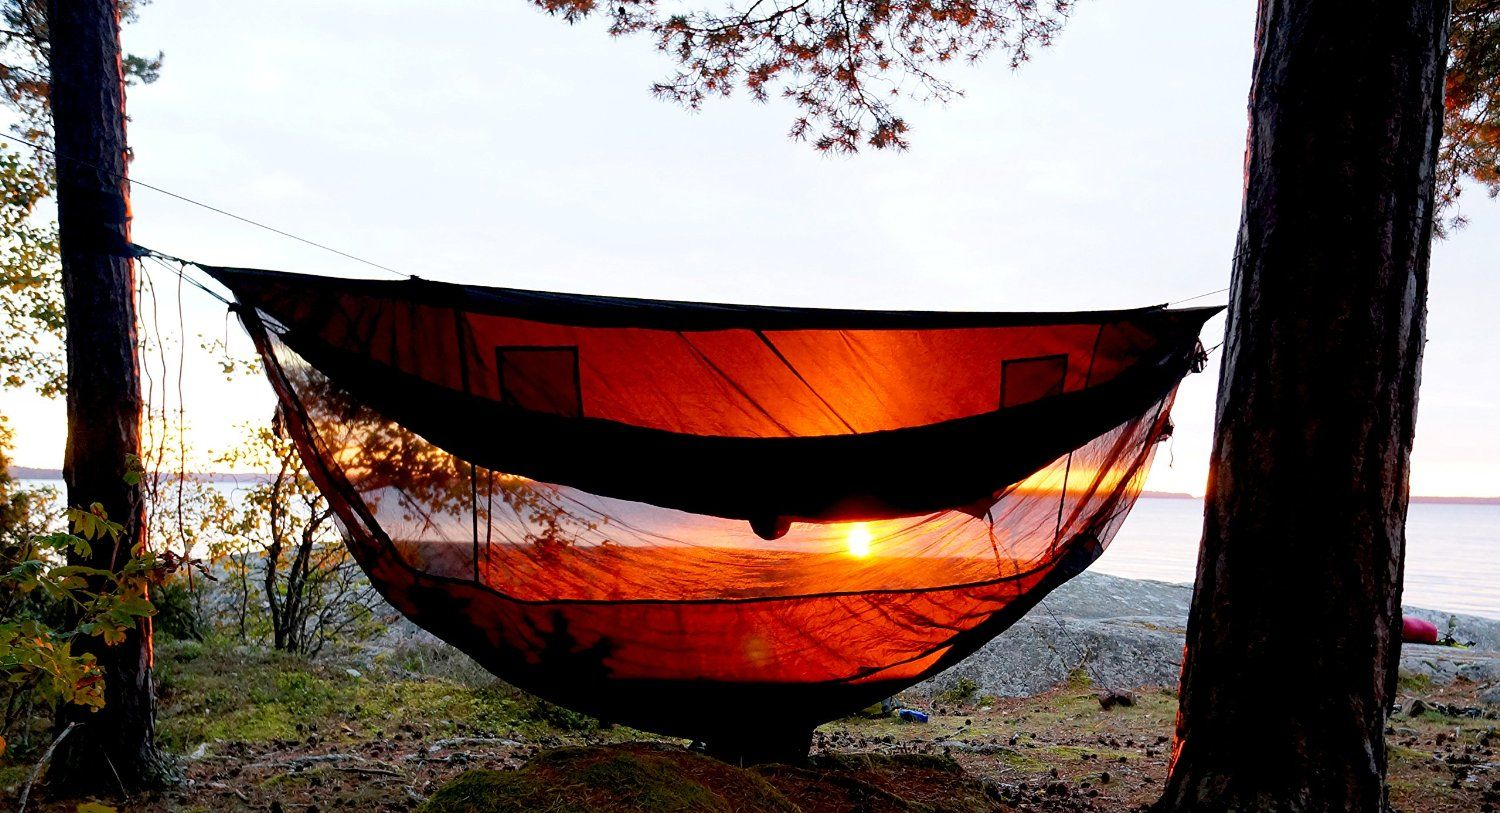 Amazon.com  Hammock Bliss Sky Tent 2 - A Revolutionary Tent For 1 or : hammock tent amazon - memphite.com